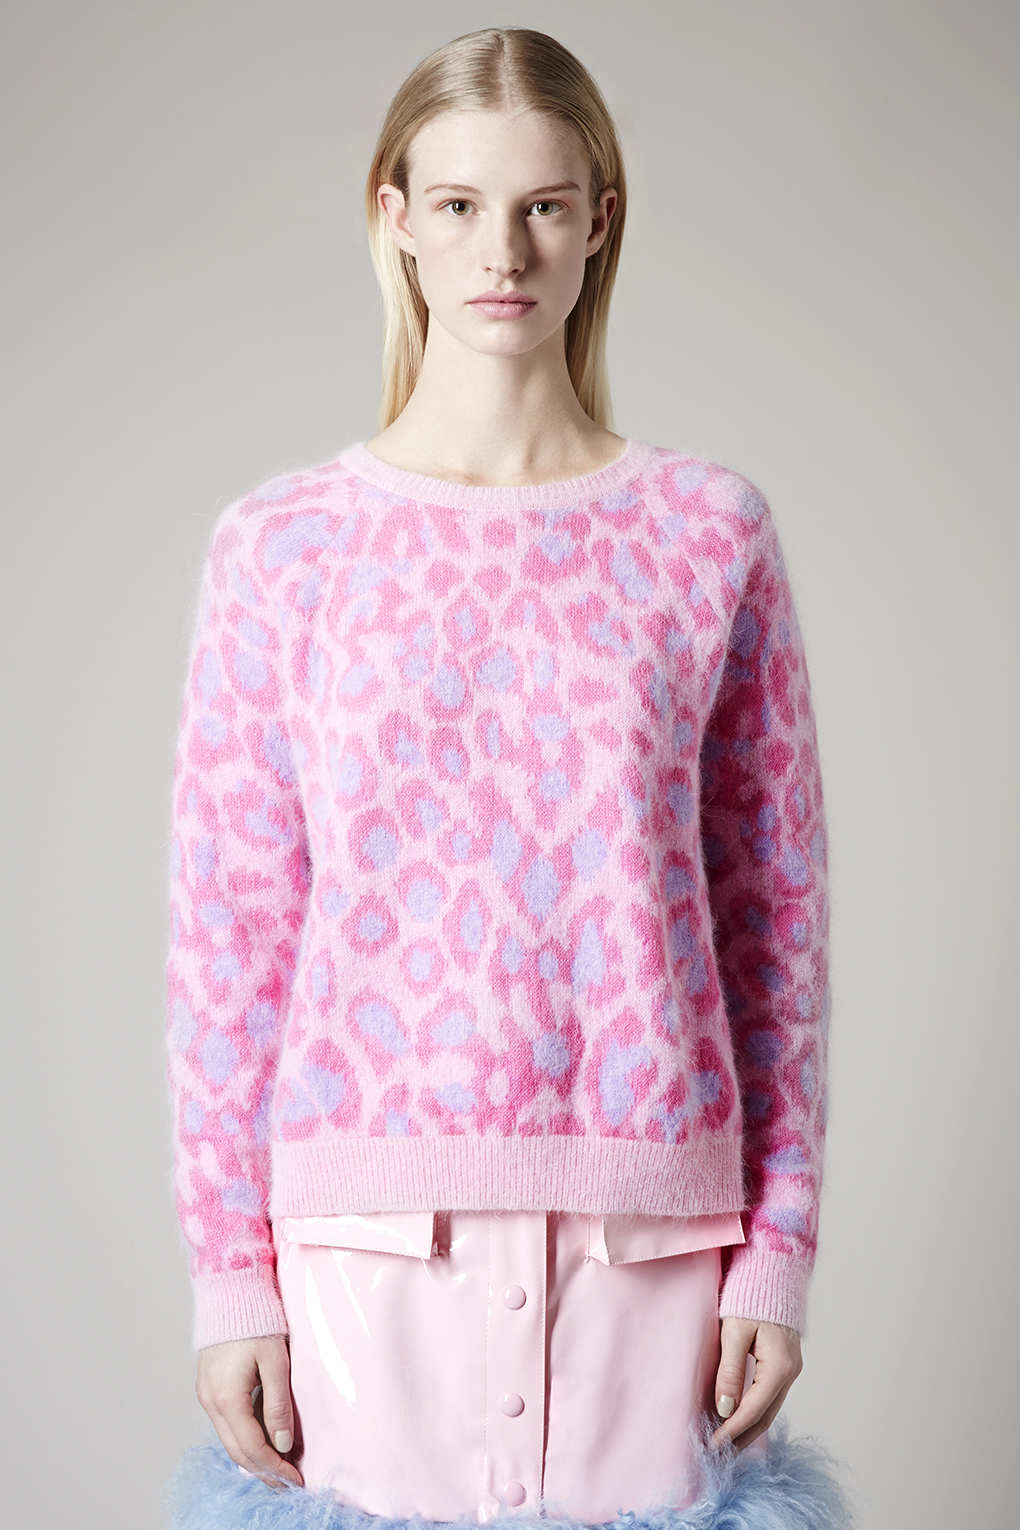 Pink Leopard Print Sweater | Dress images